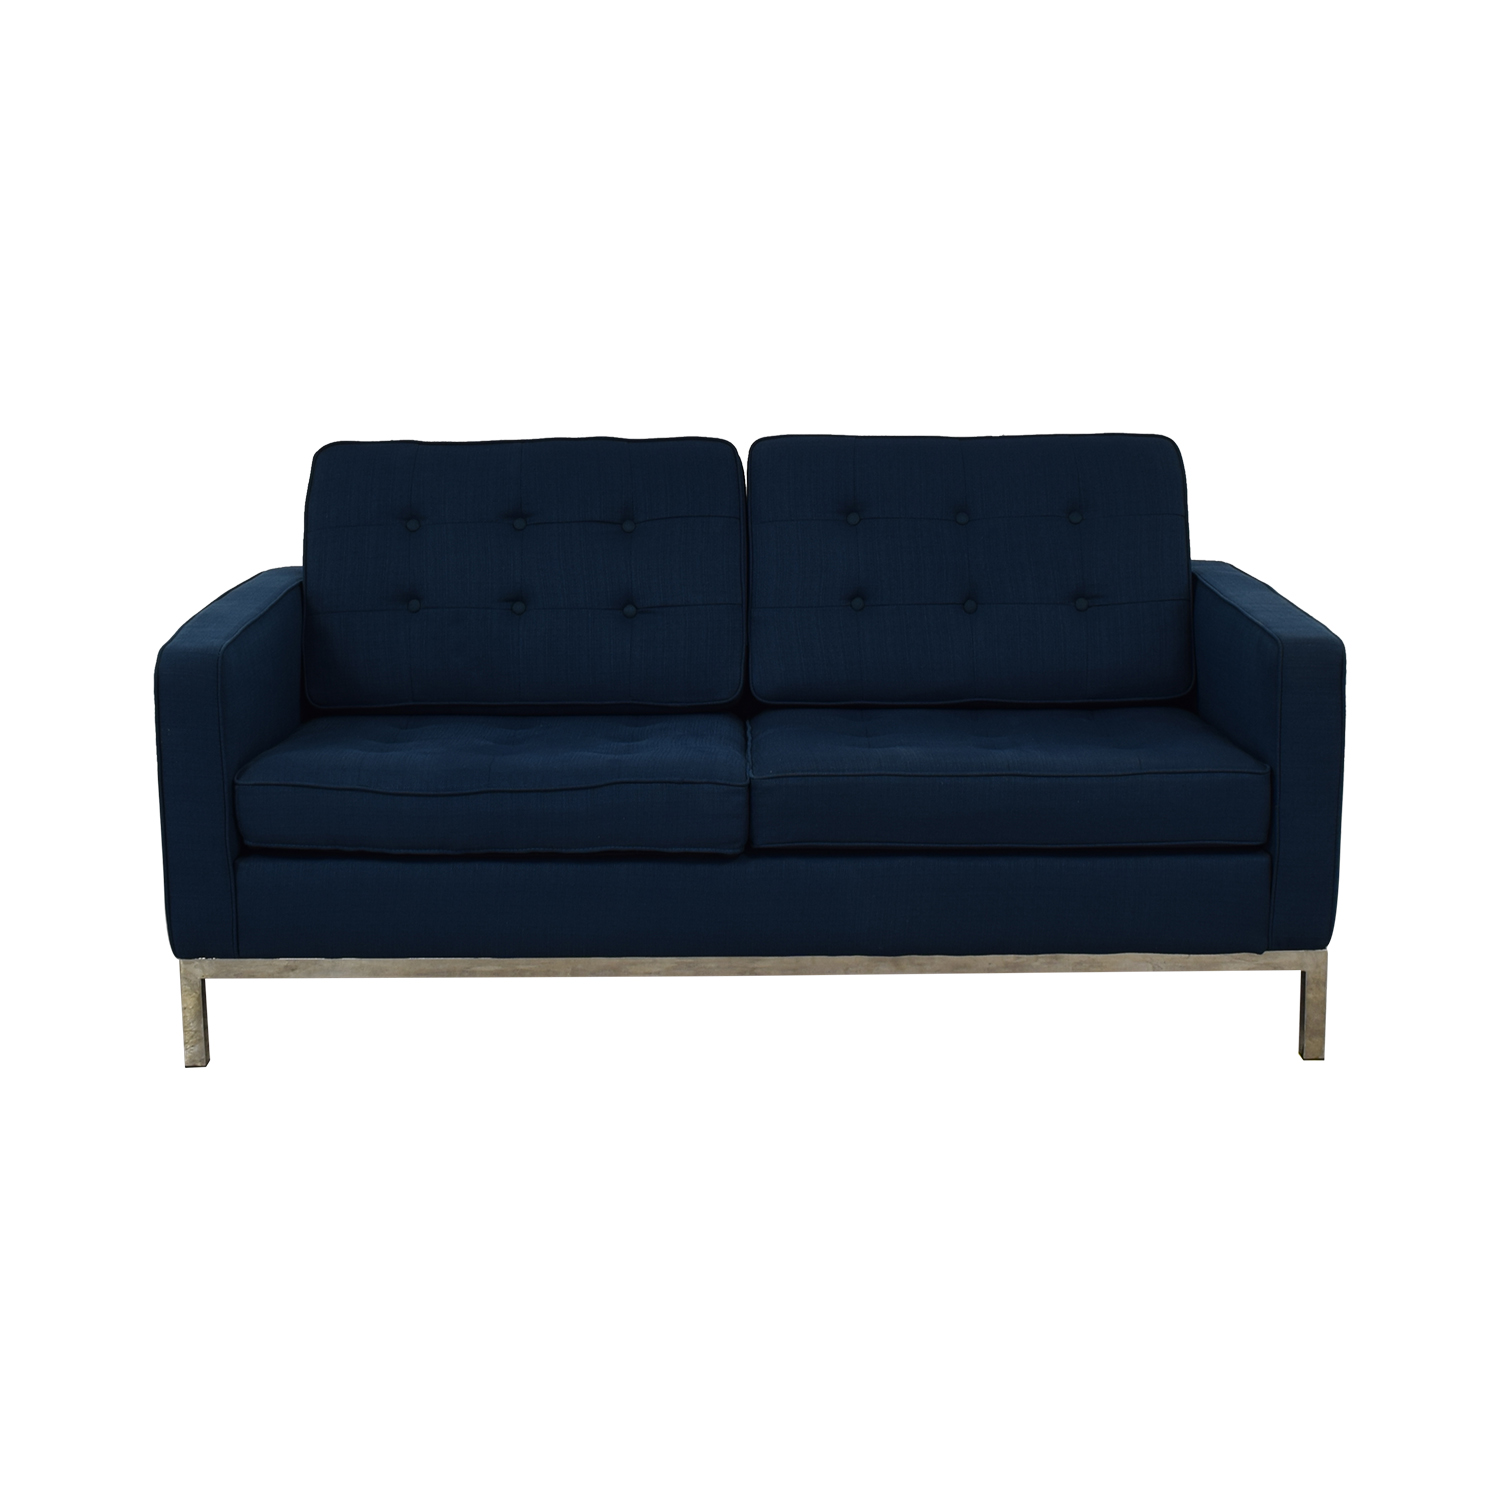 Modway Modway Loft Blue Tufted Two-Cushion Loveseat discount